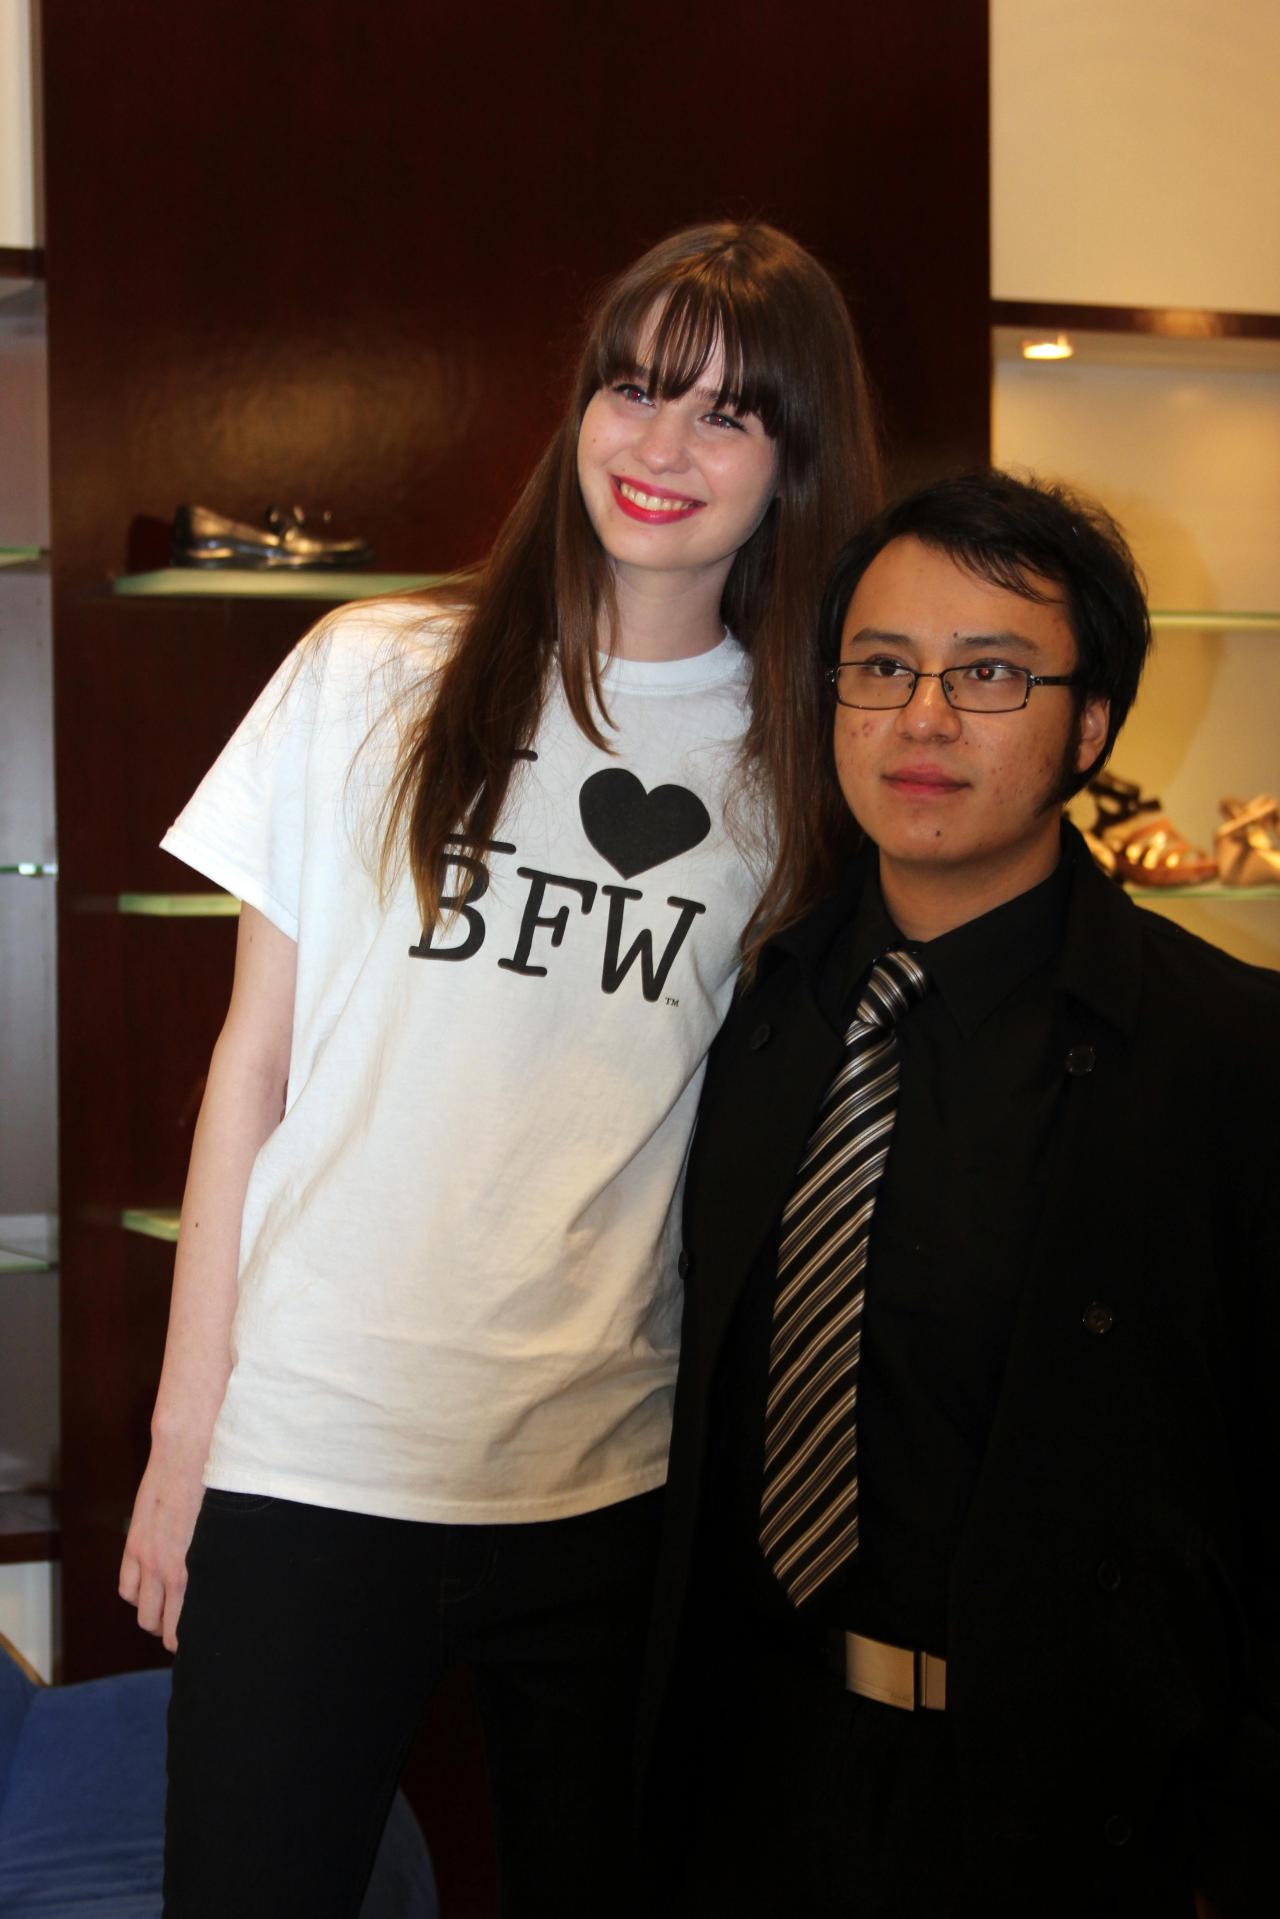 The lovely Leah Burns posing with a dashing fellow at the BFW kick off party.